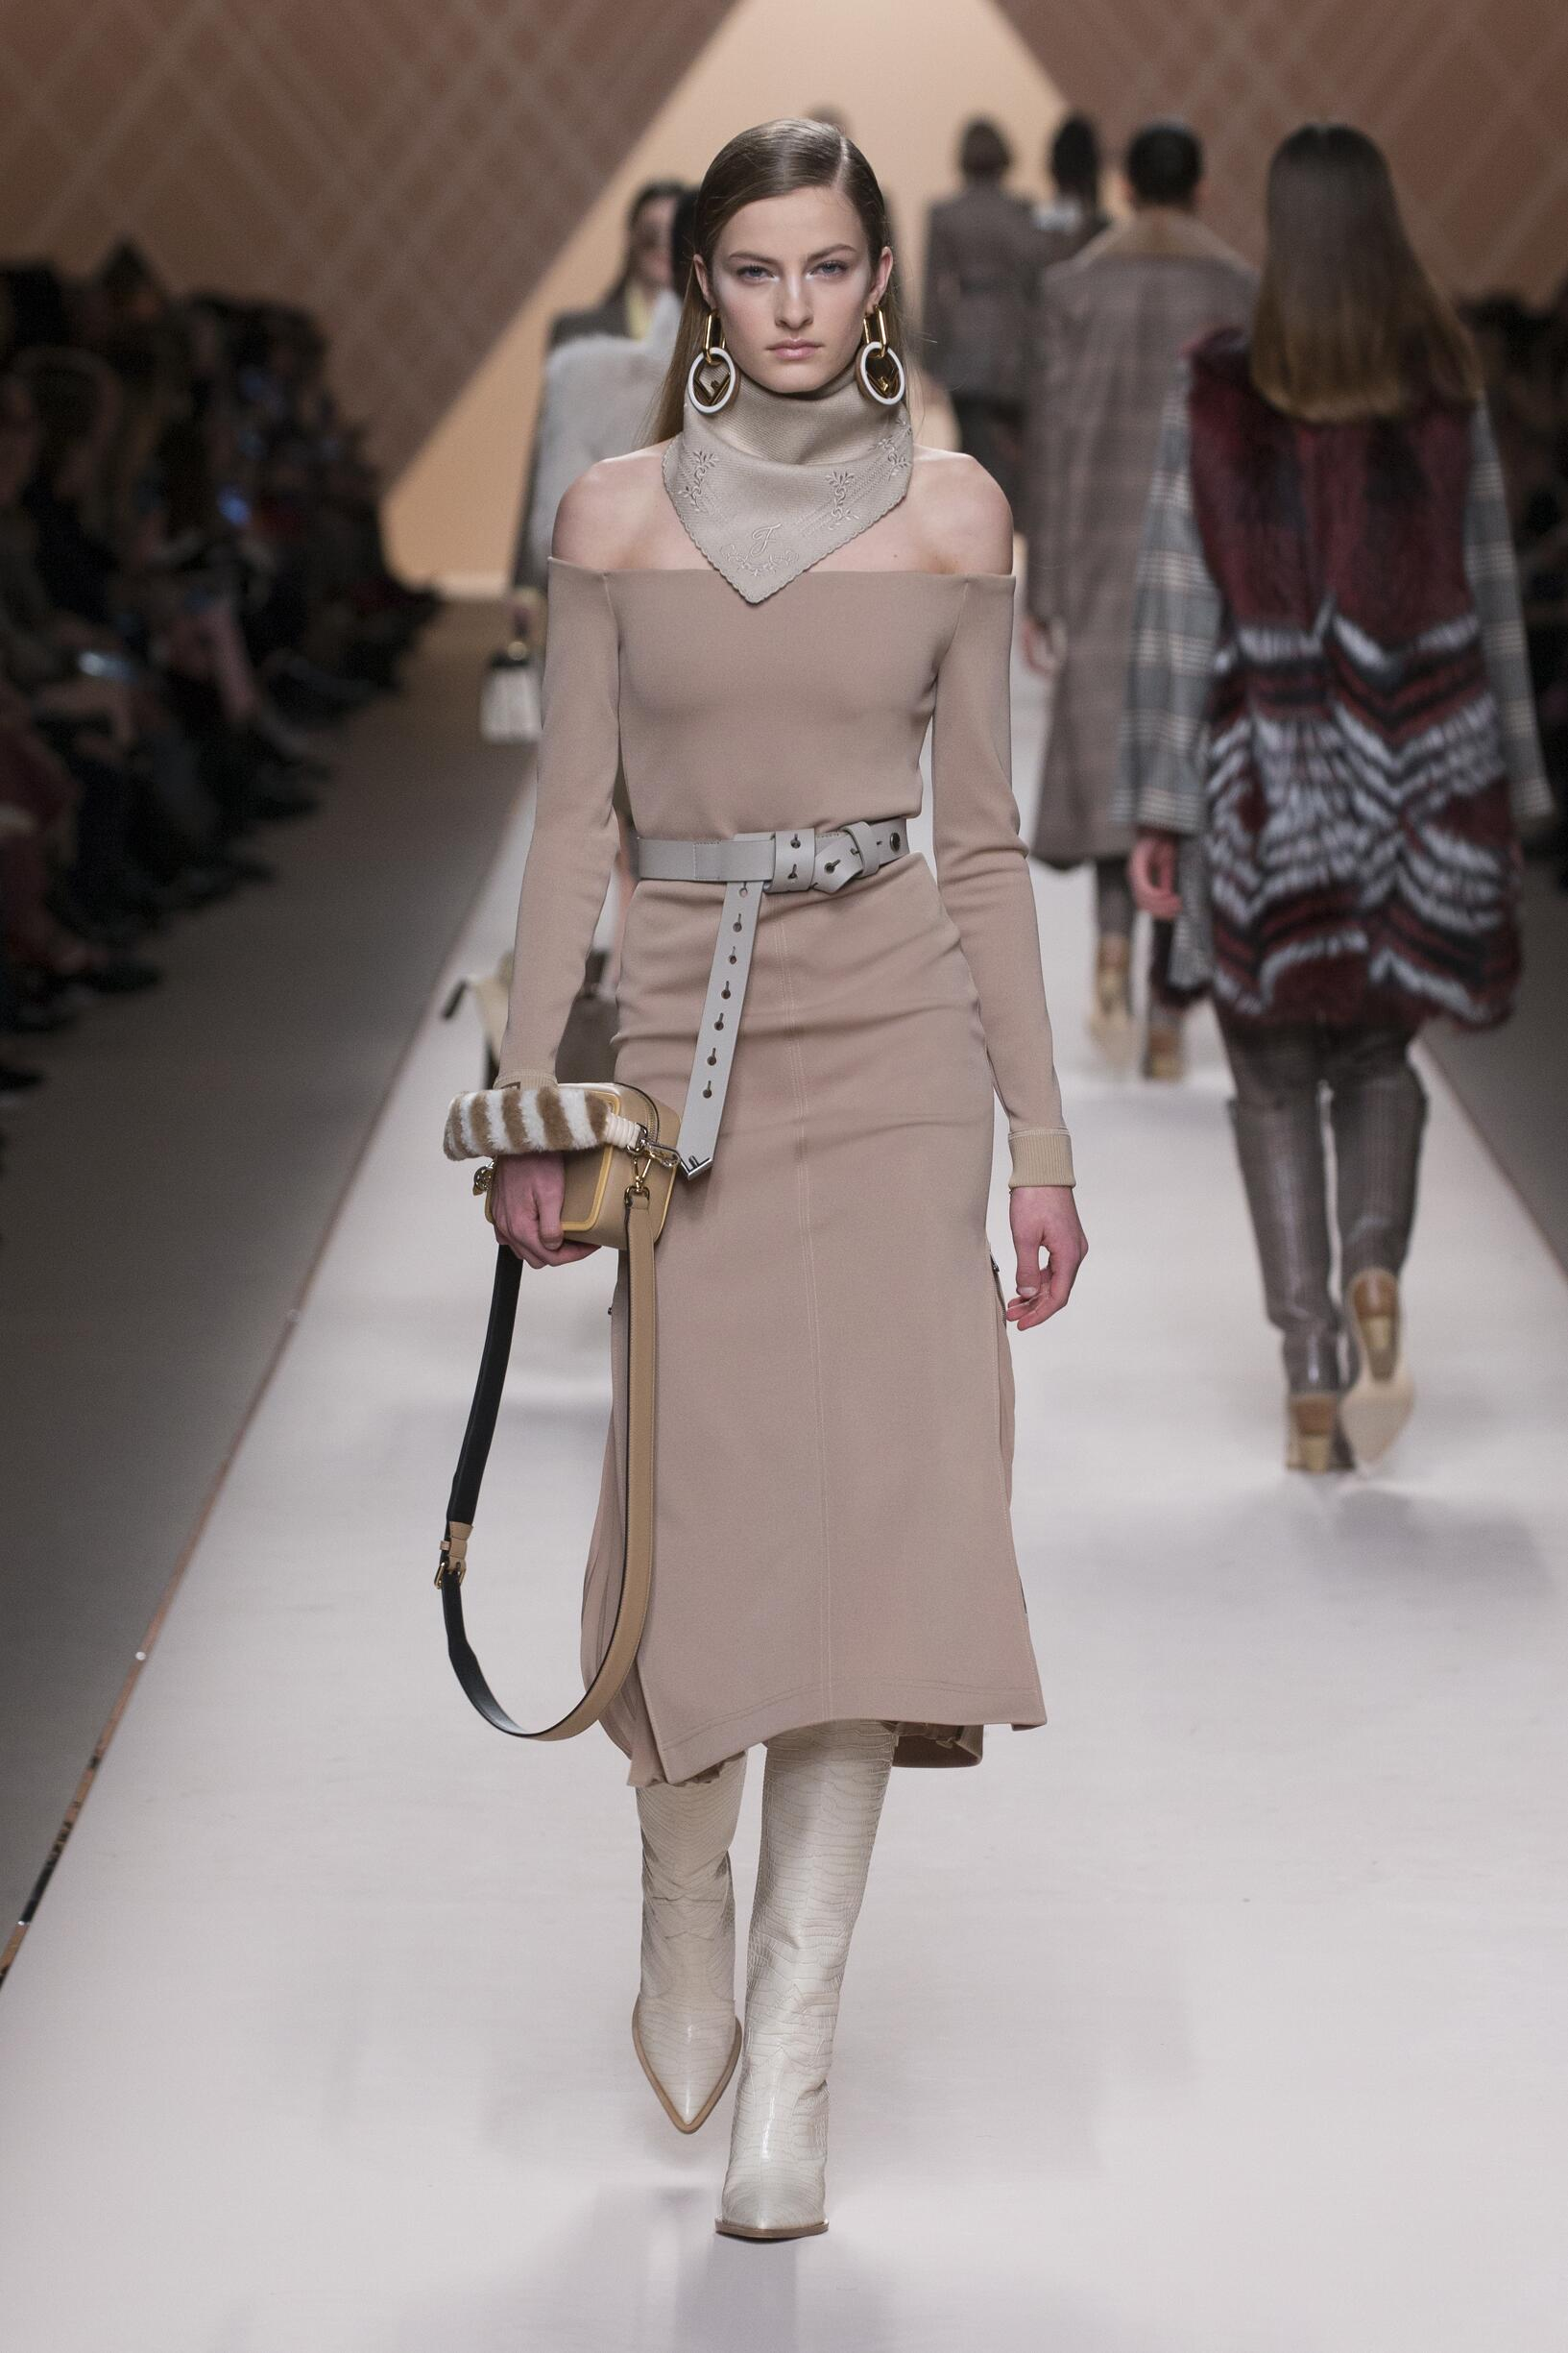 fendi fall winter 2018 women's collection  the skinny beep